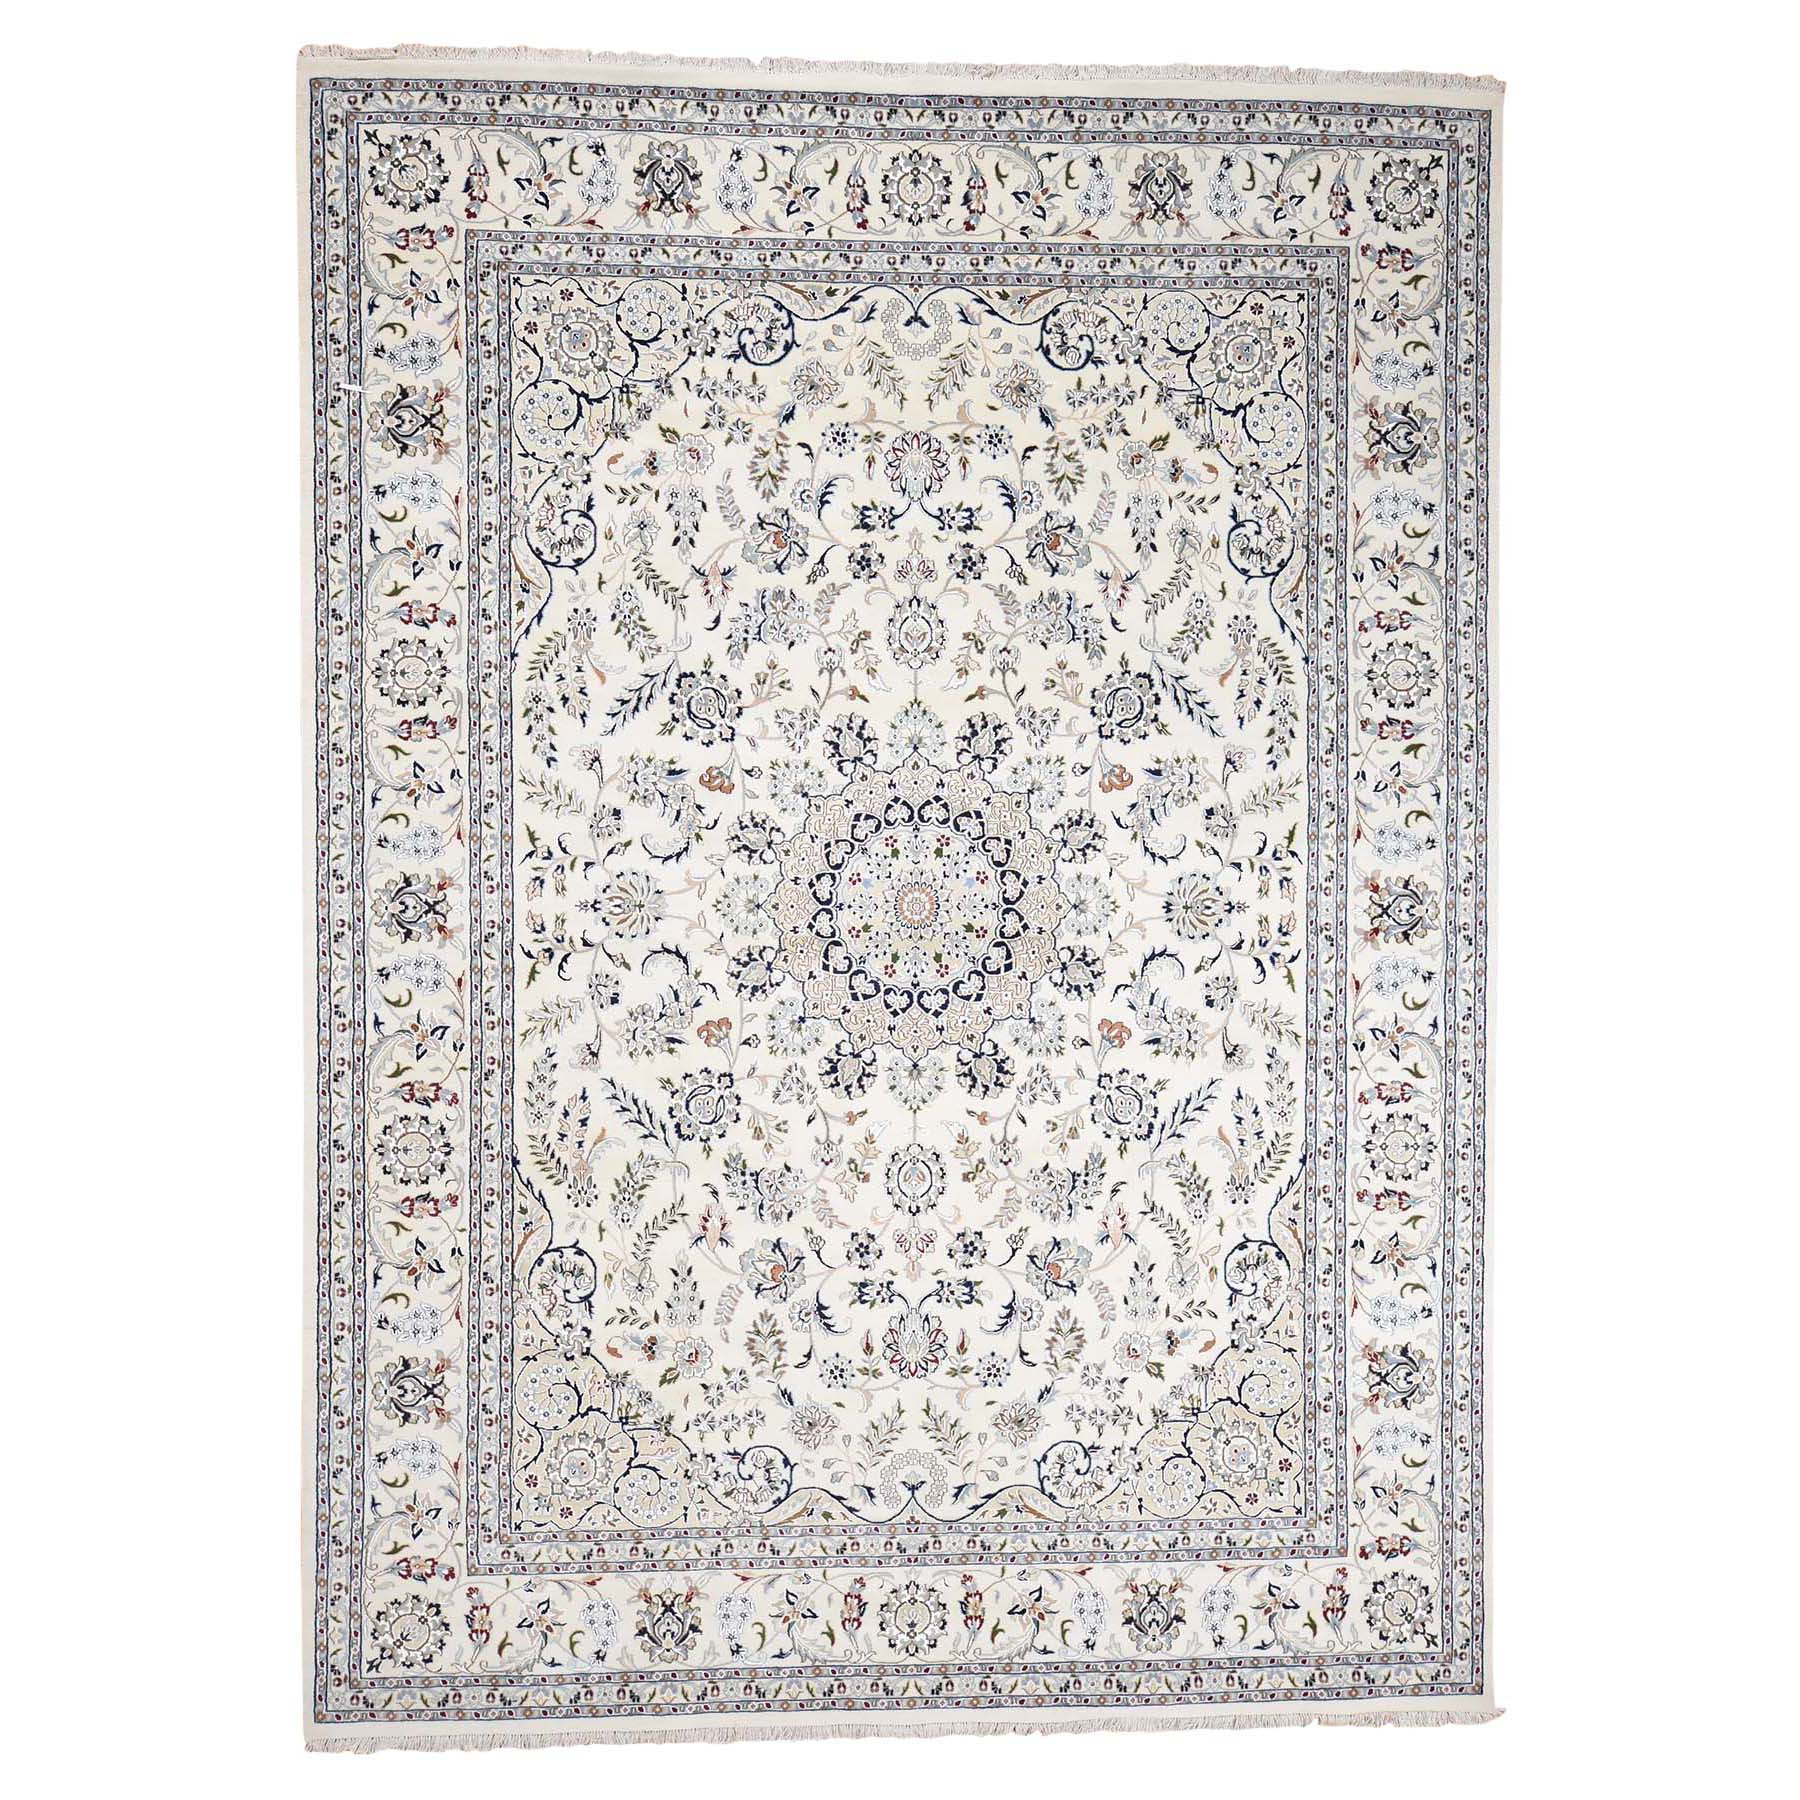 Pirniakan Collection Hand Knotted Ivory Rug No: 0192288